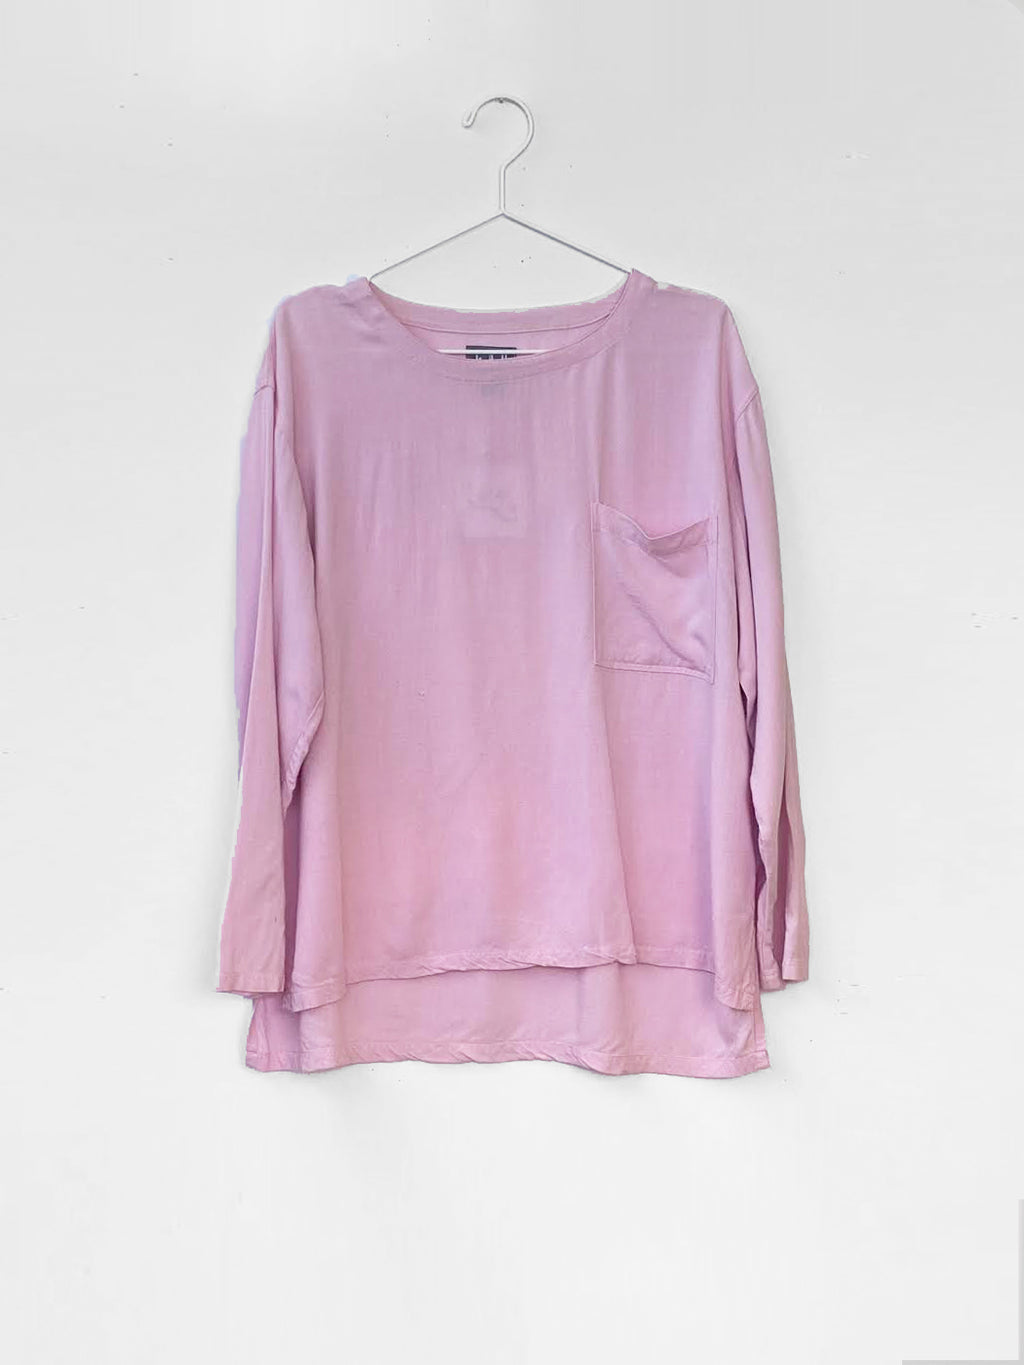 long sleeve baby pink gap 90s crewneck with pocket front